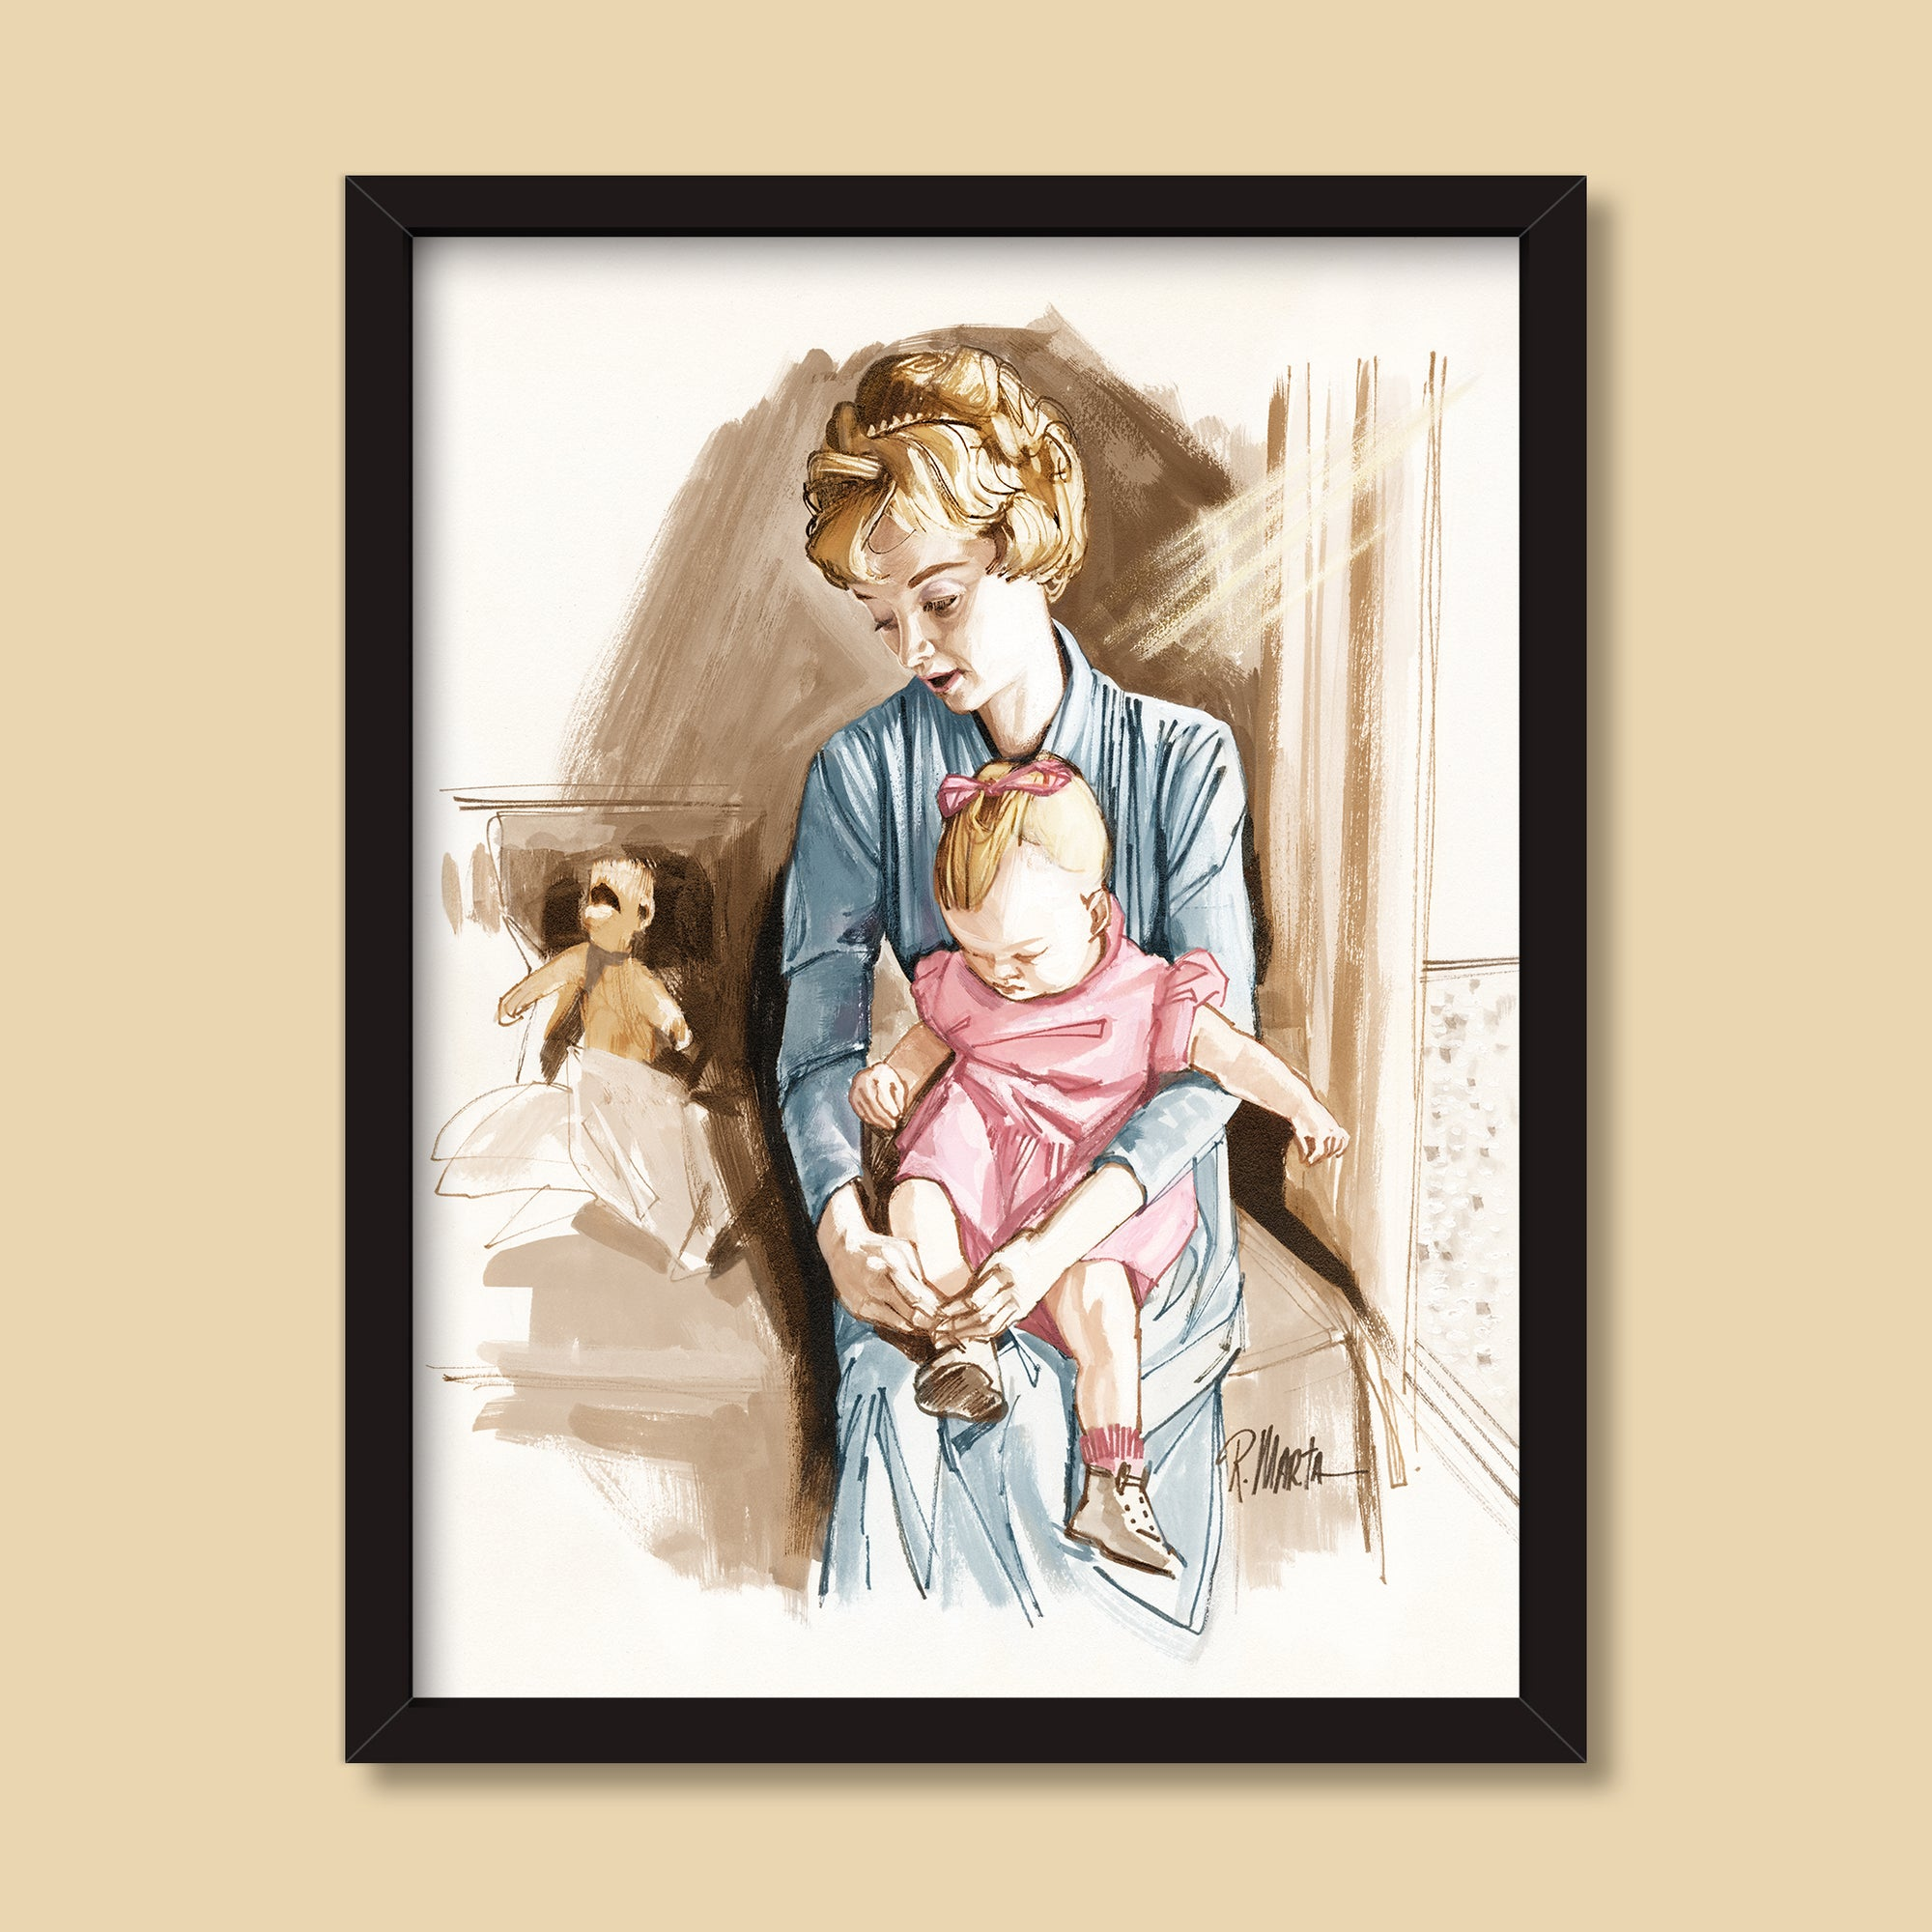 The Nursery | Vintage illustration by Ray Marta